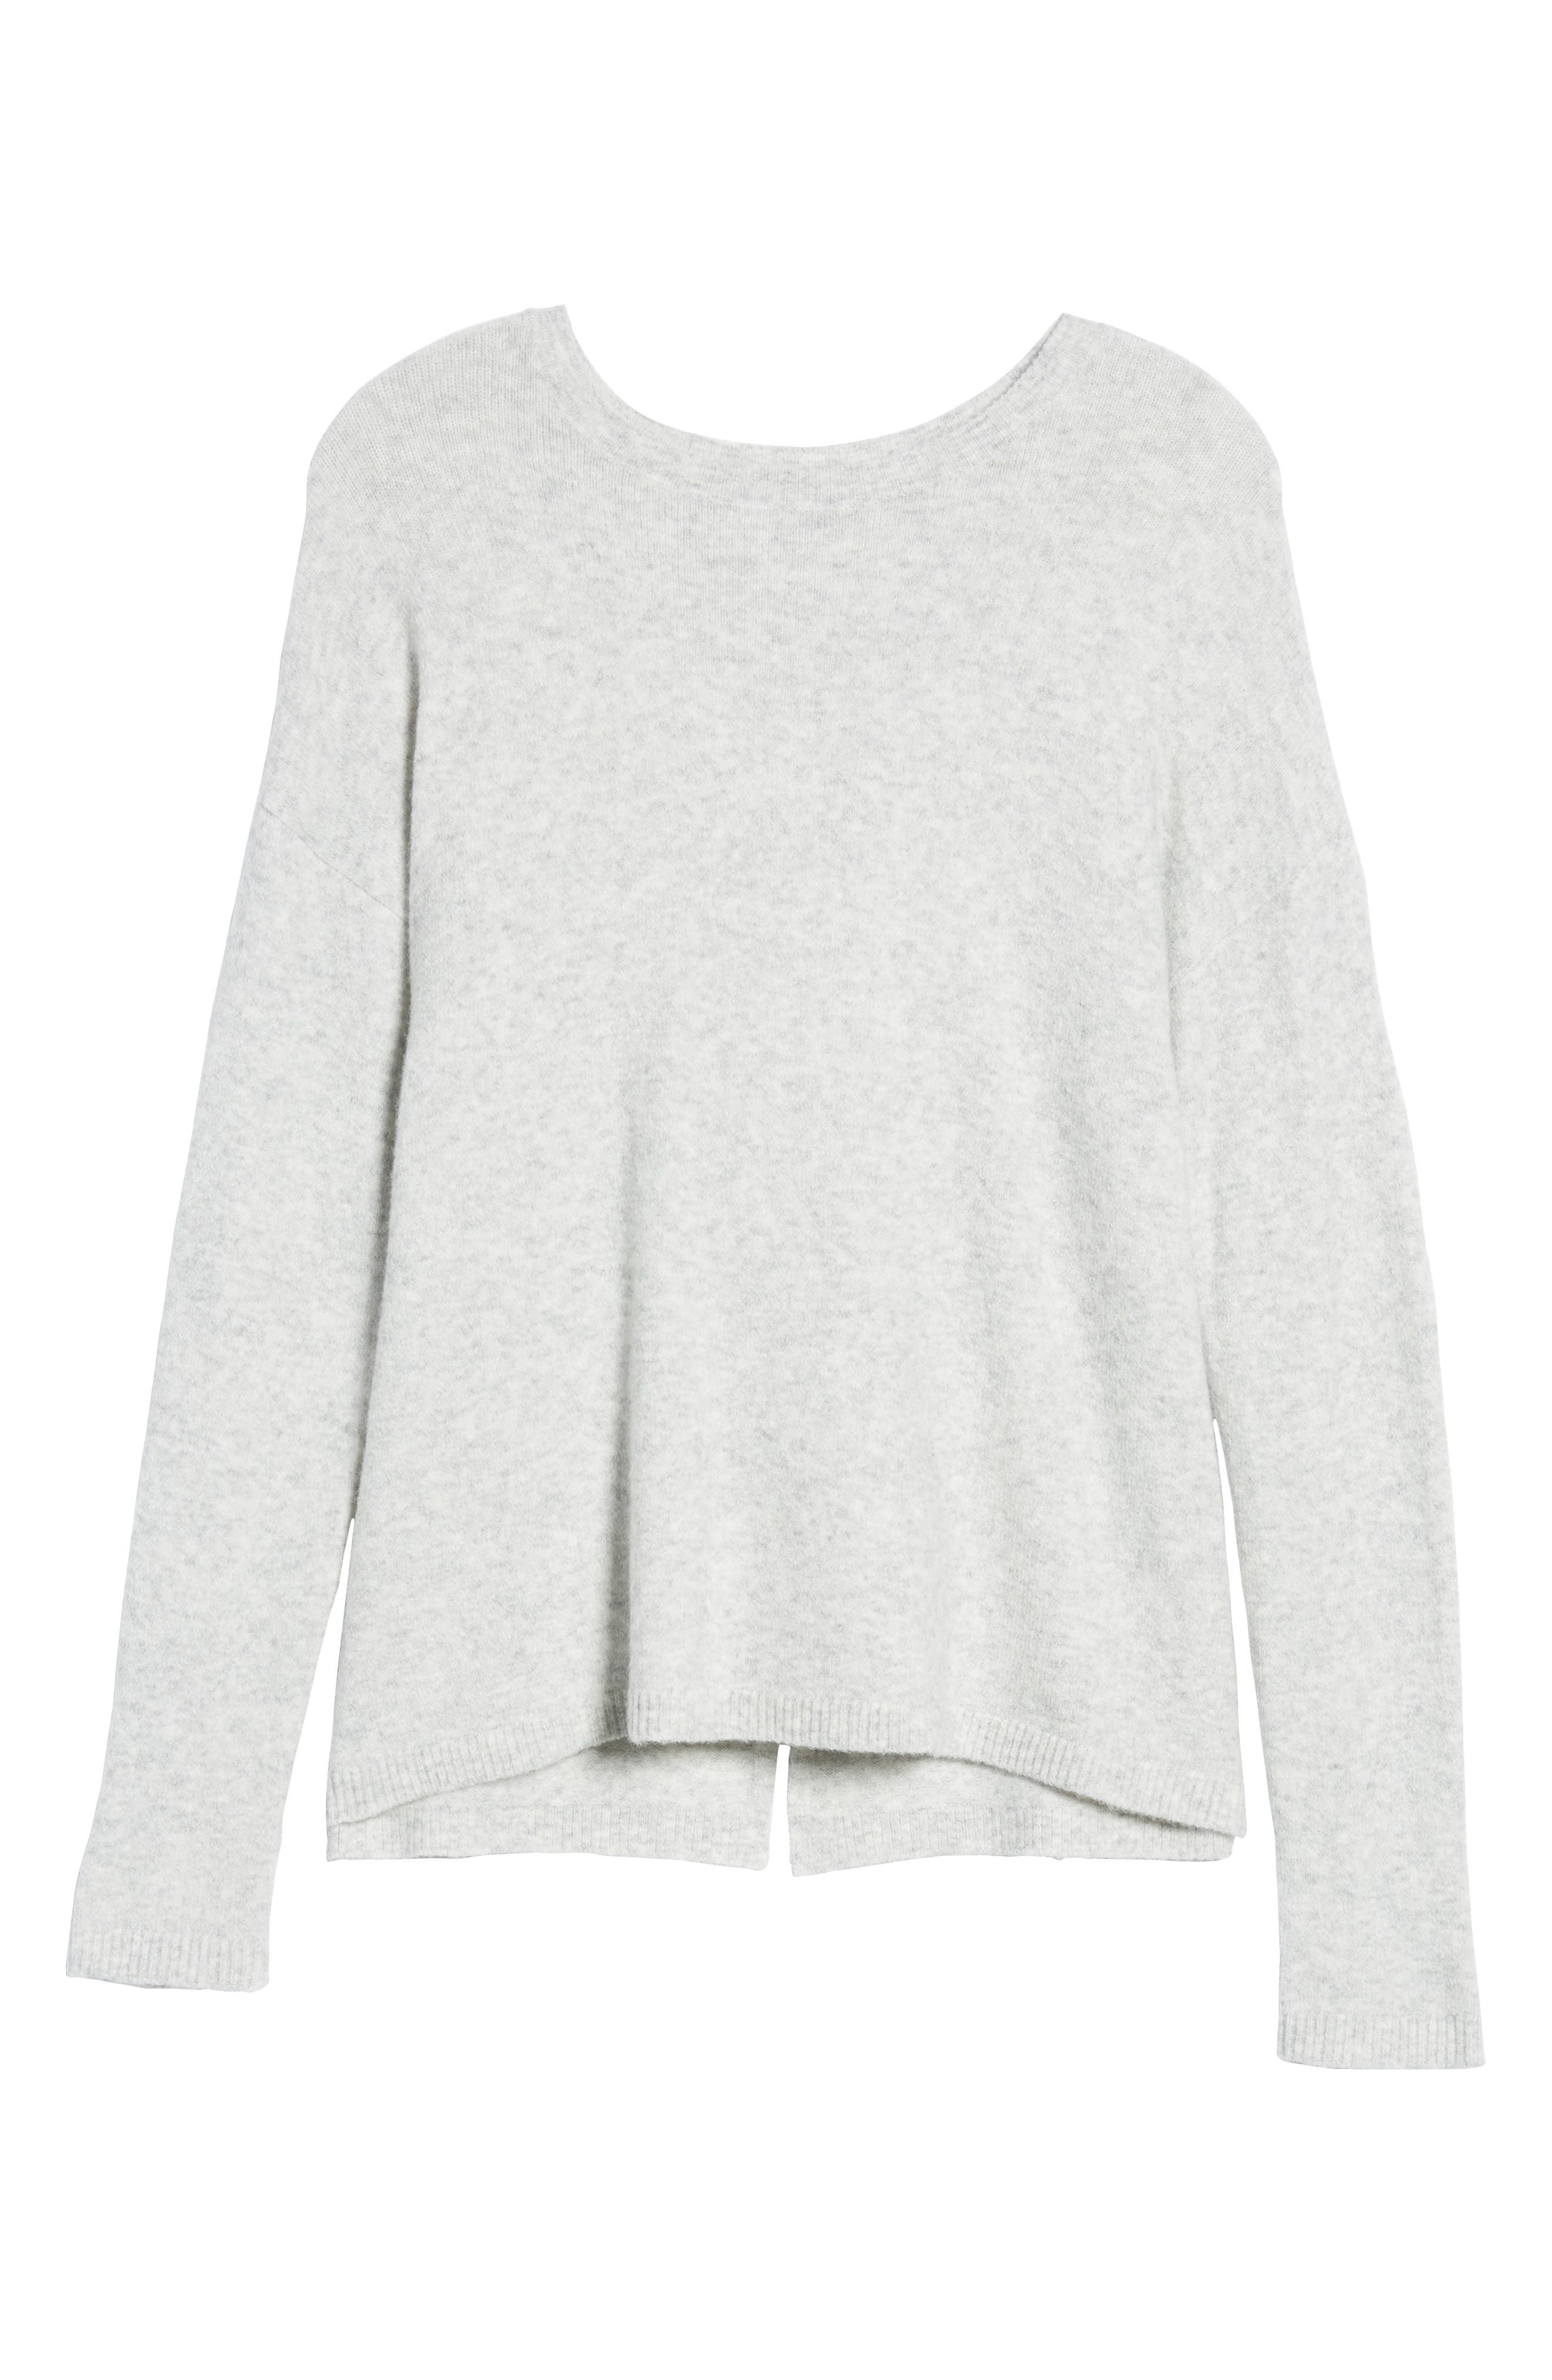 Bow Back Sweater,                             Alternate thumbnail 6, color,                             HEATHER LIGHT GREY